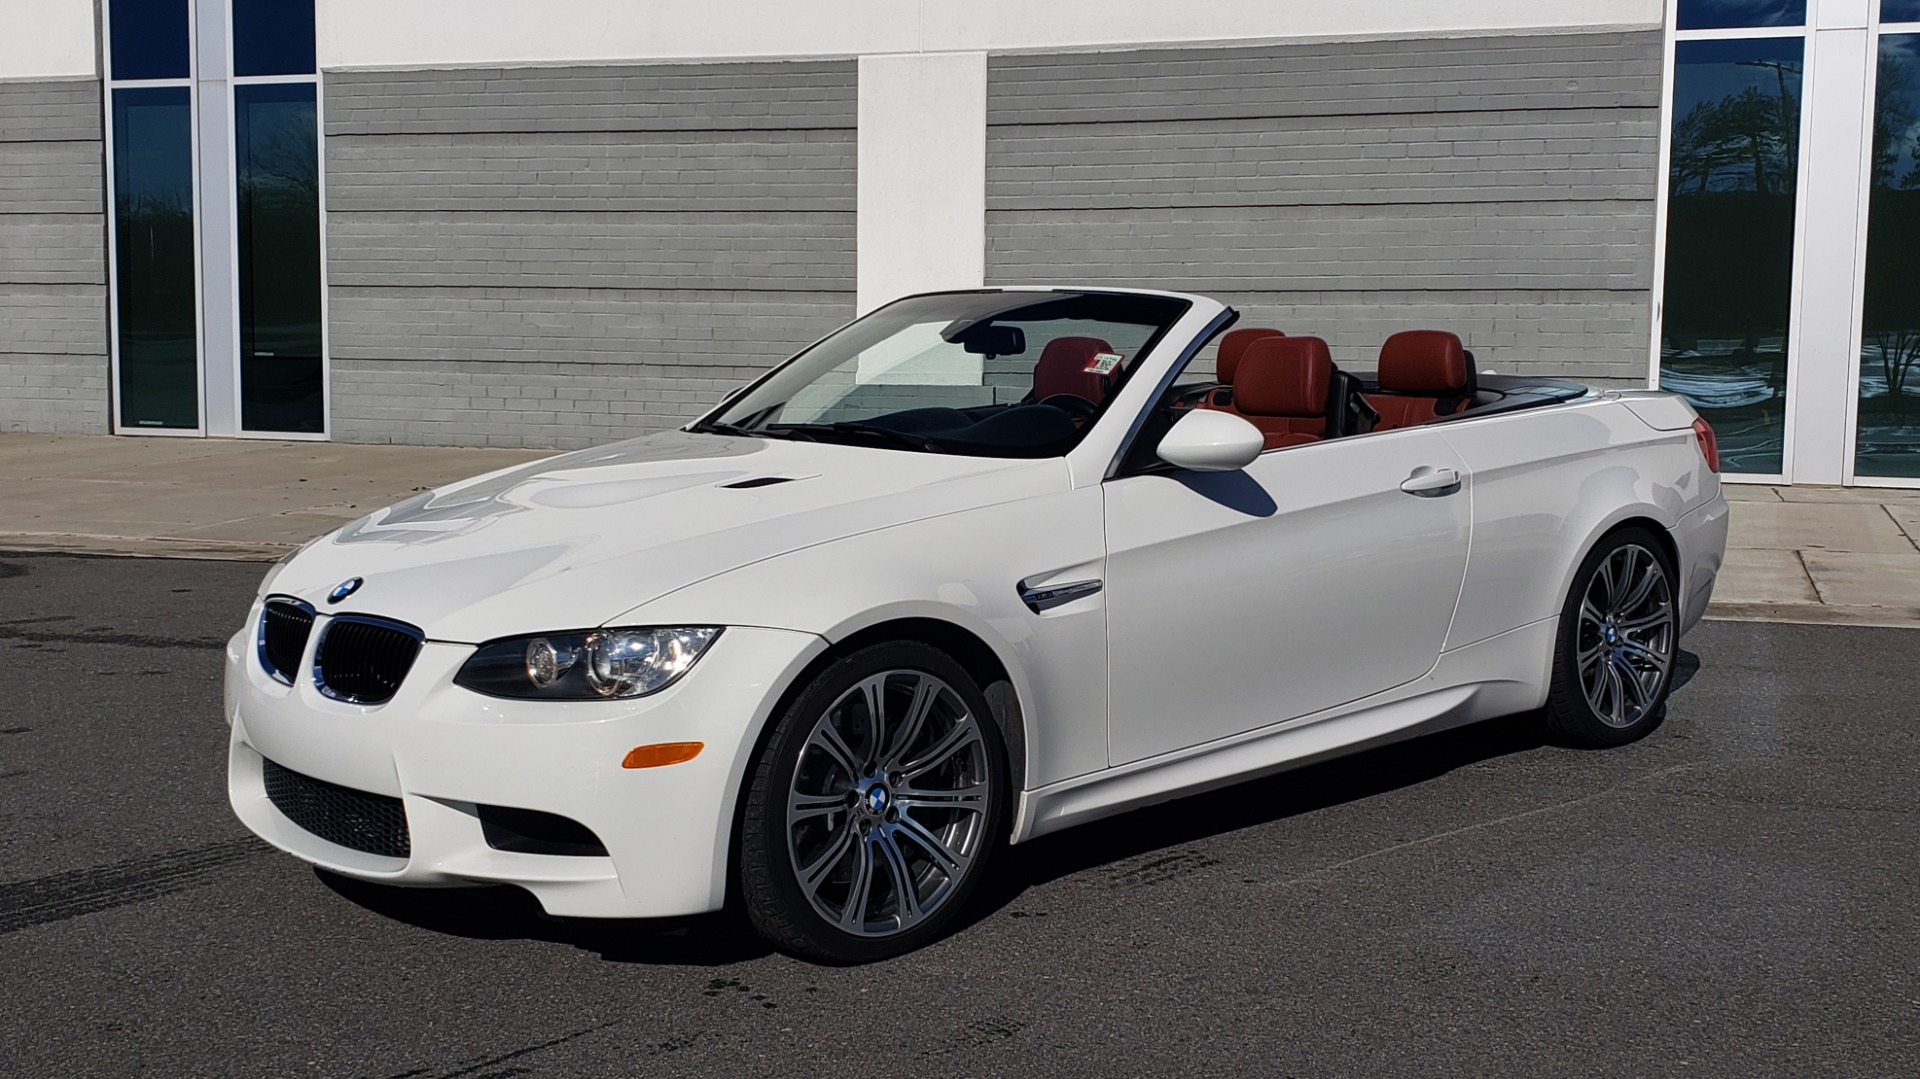 Used 2012 BMW M3 CONVERTIBLE / PREM PKG / NAV / M-DOUBLE CLUTCH AUTOMATIC for sale Sold at Formula Imports in Charlotte NC 28227 1